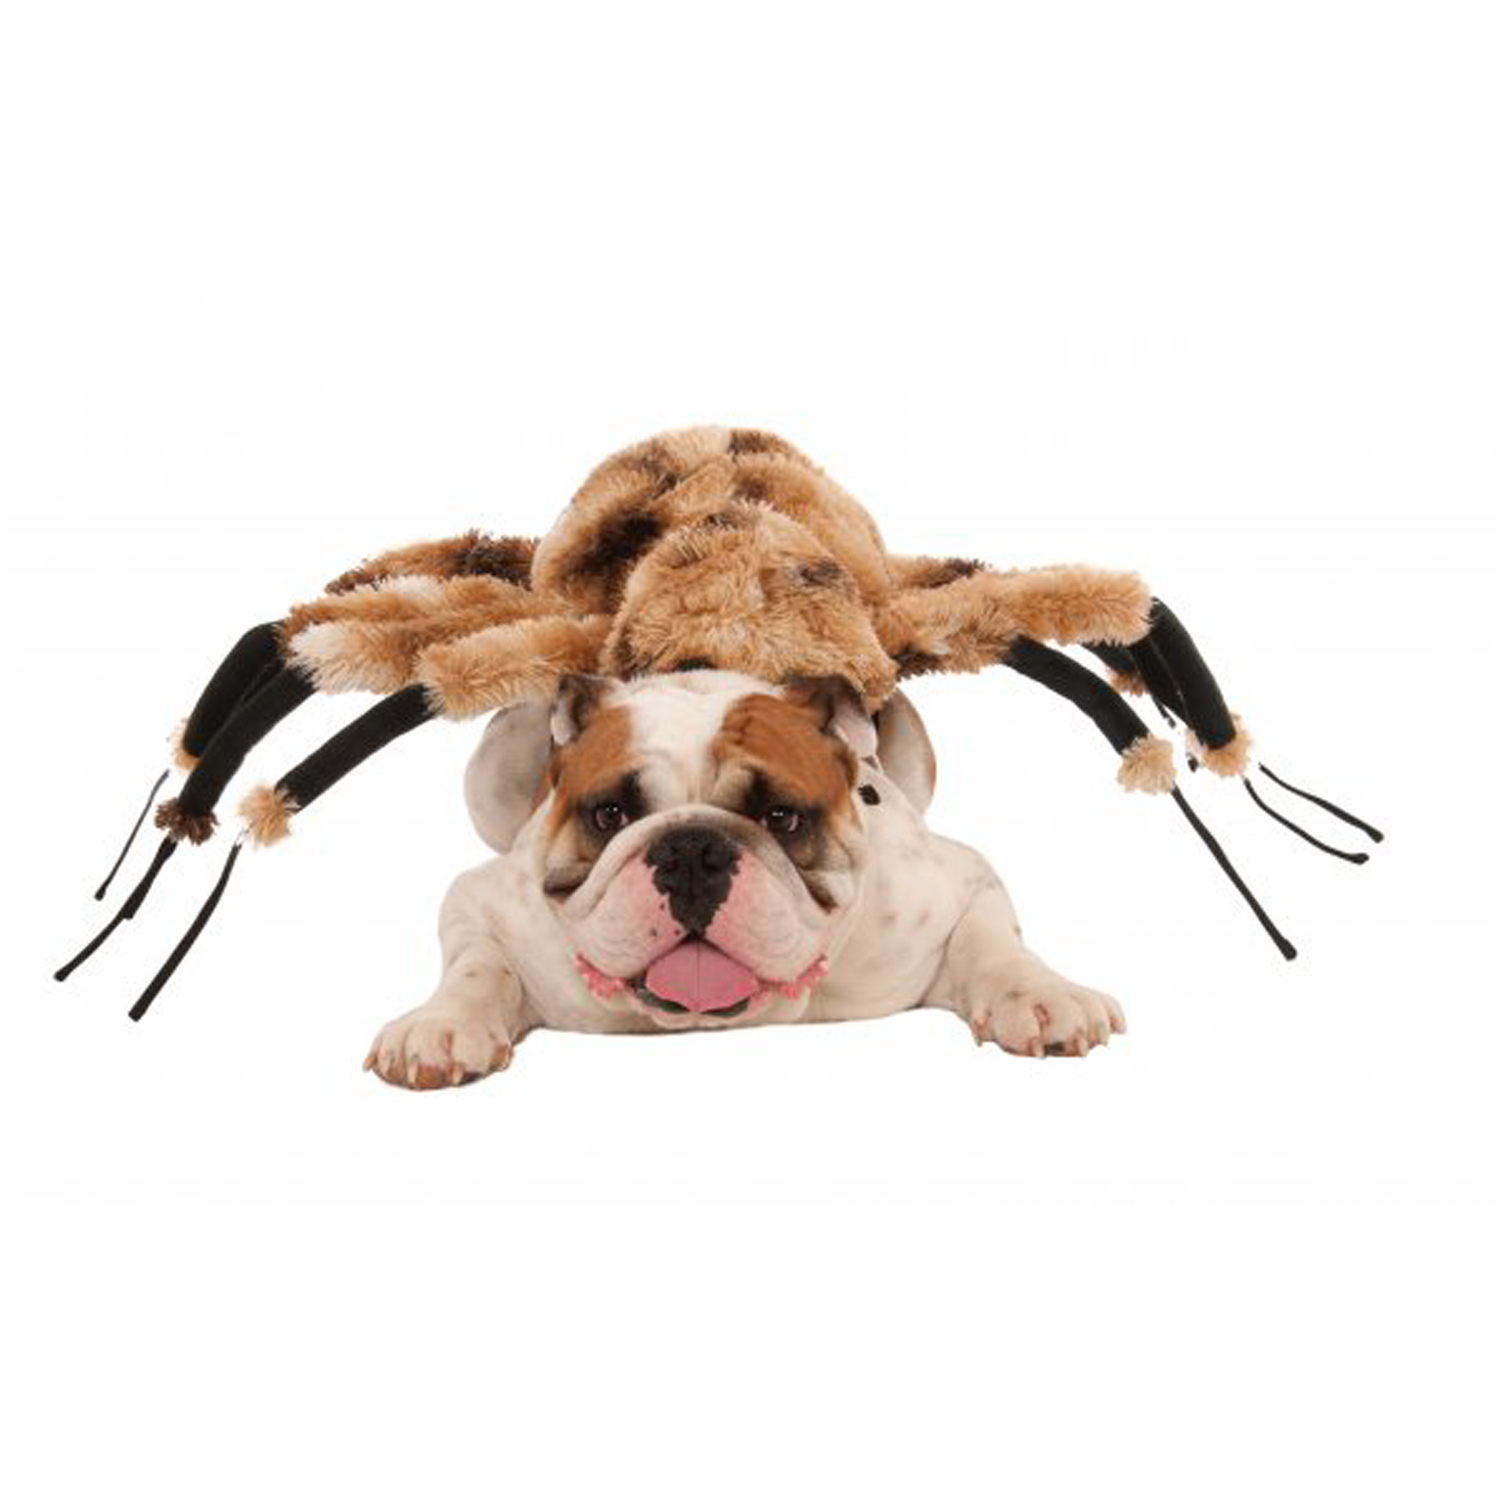 Rubieu0027s Giant Spider Dog Costume  sc 1 st  BaxterBoo & Rubieu0027s Giant Spider Dog Costume with Same Day Shipping | BaxterBoo